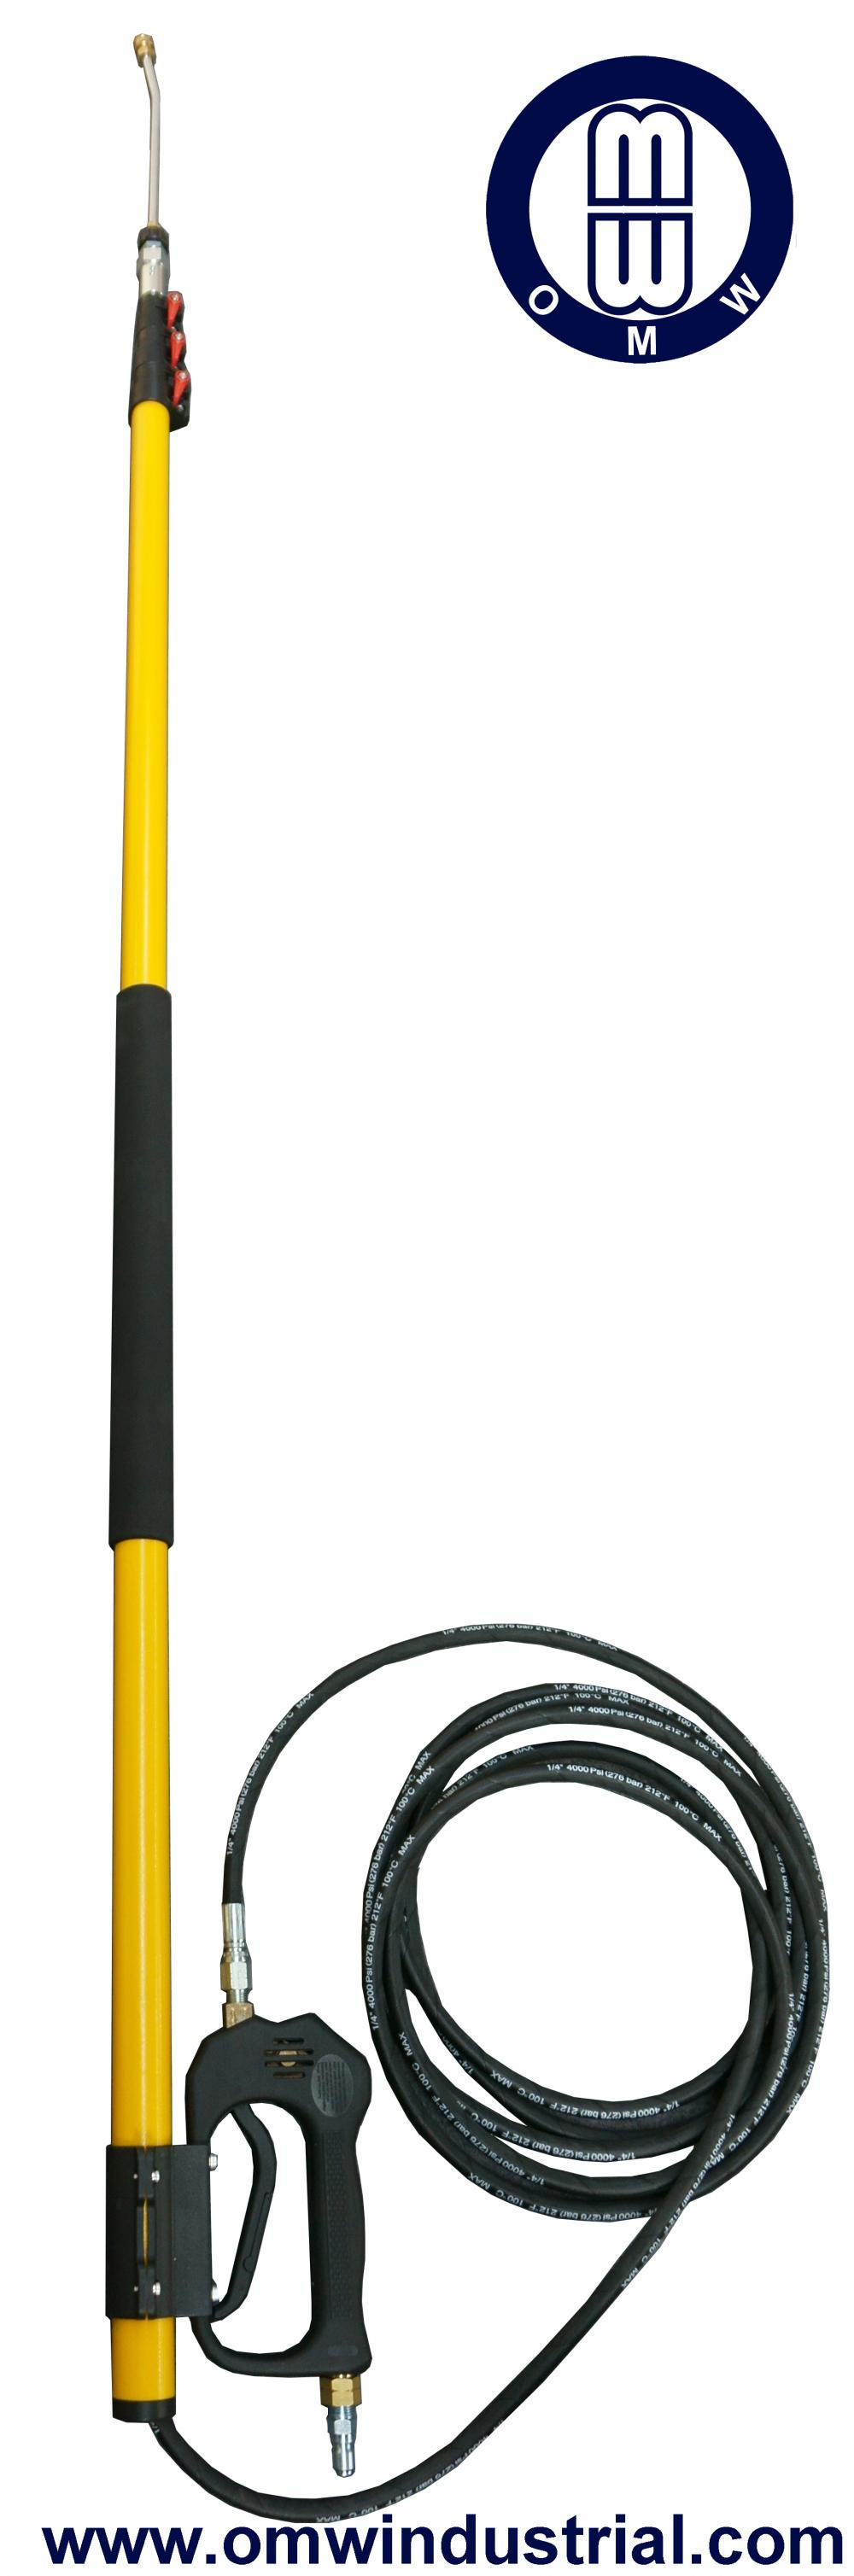 "18 ft 4000 PSI Pressure Washer Telescoping Wand Assembly 3/8"" Inlet 1/4"" Outlet"